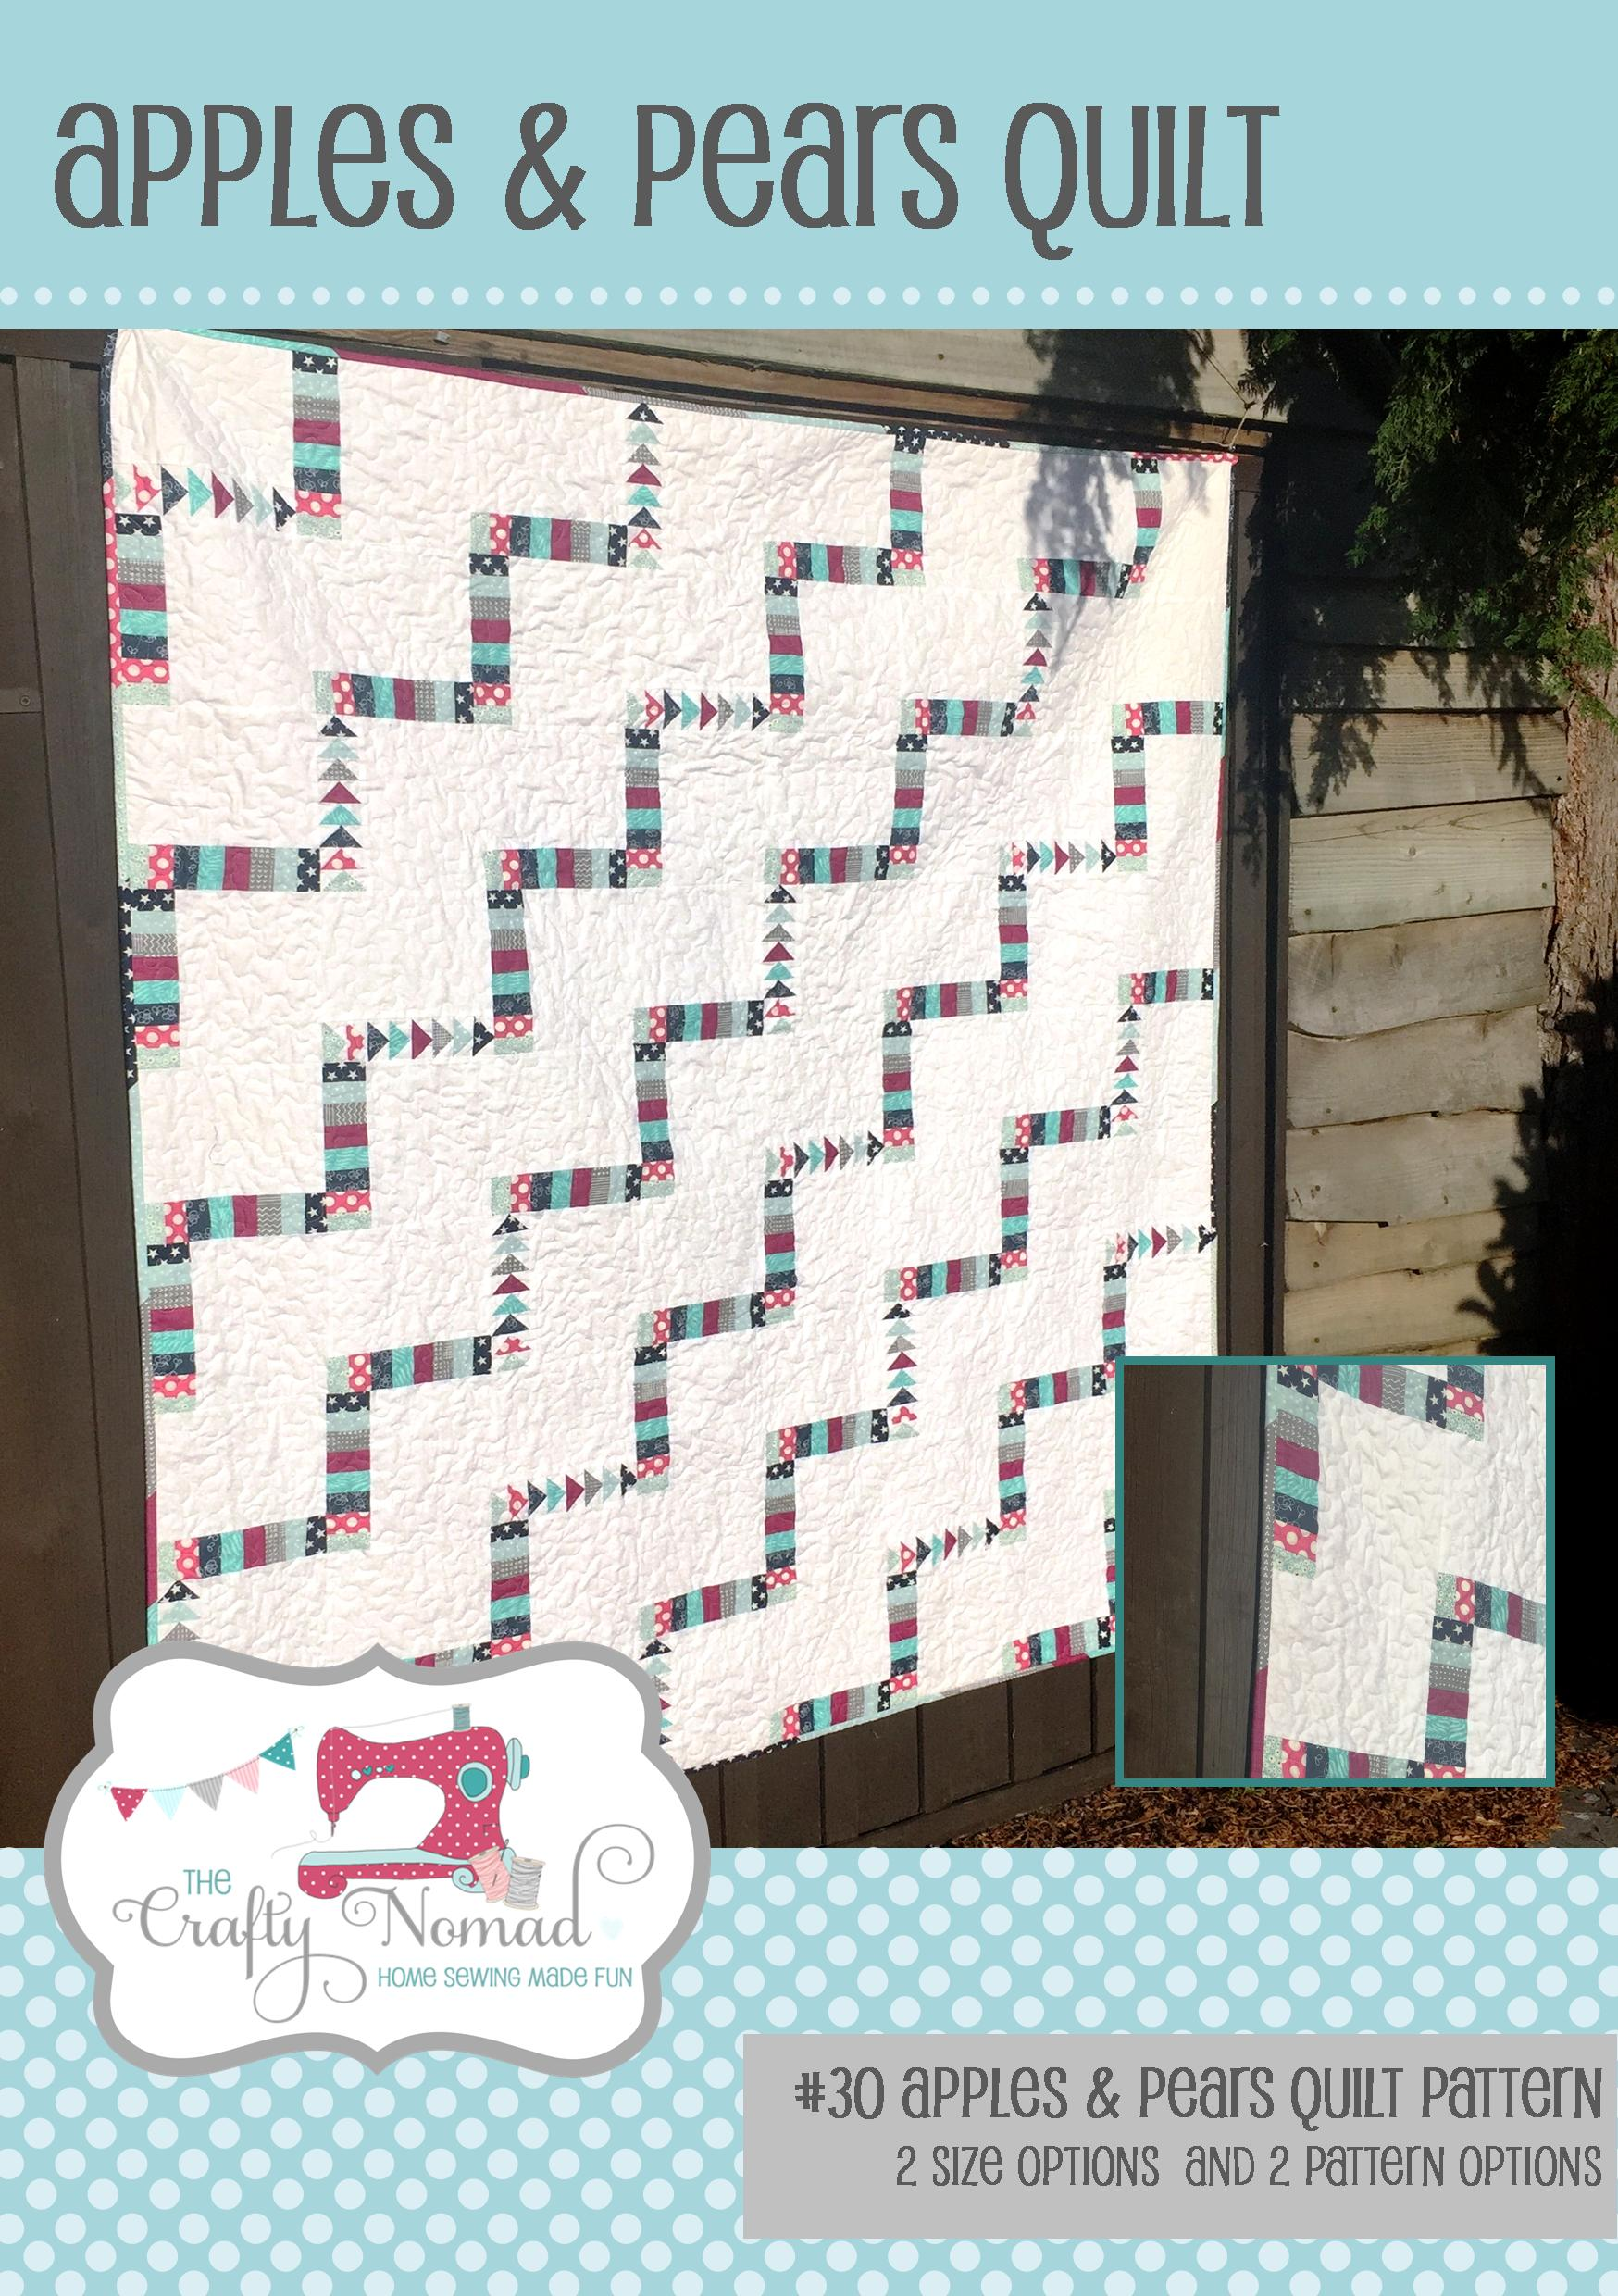 The Crafty Nomad Apples and Pears Quilt Pattern, 4 options from Beginner to more advanced options